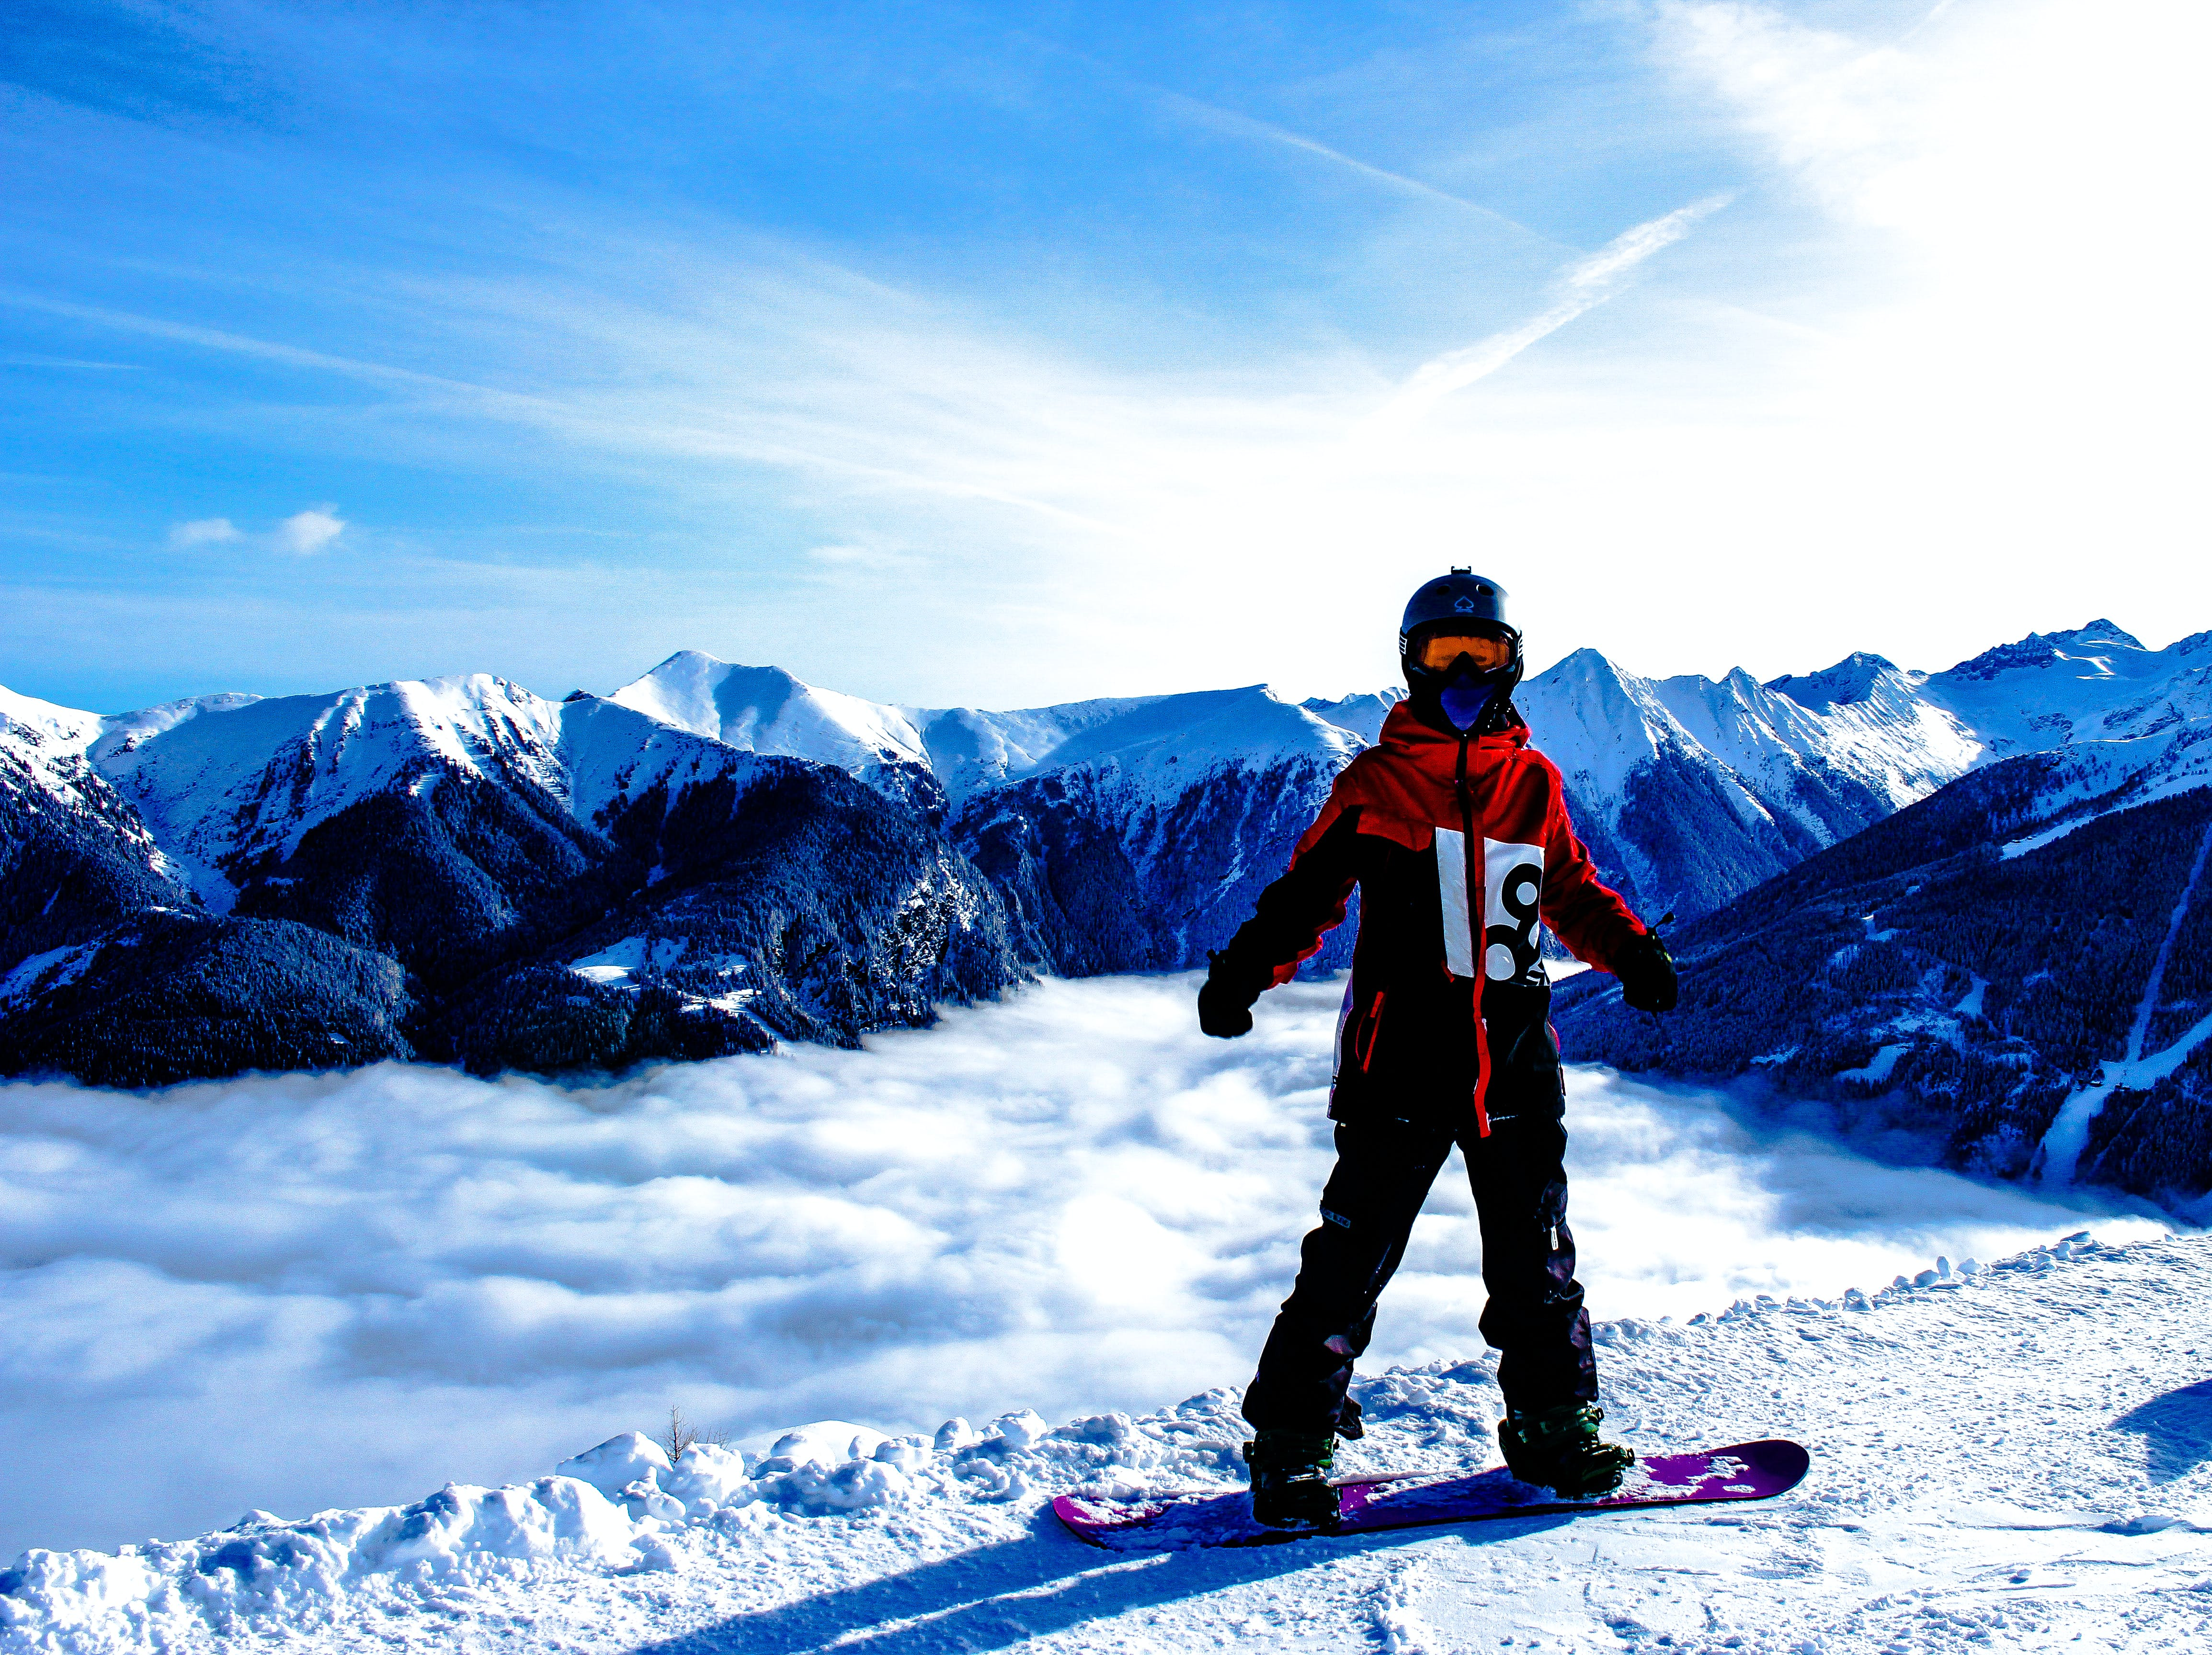 Snowboarded on Snow Covered Mountain